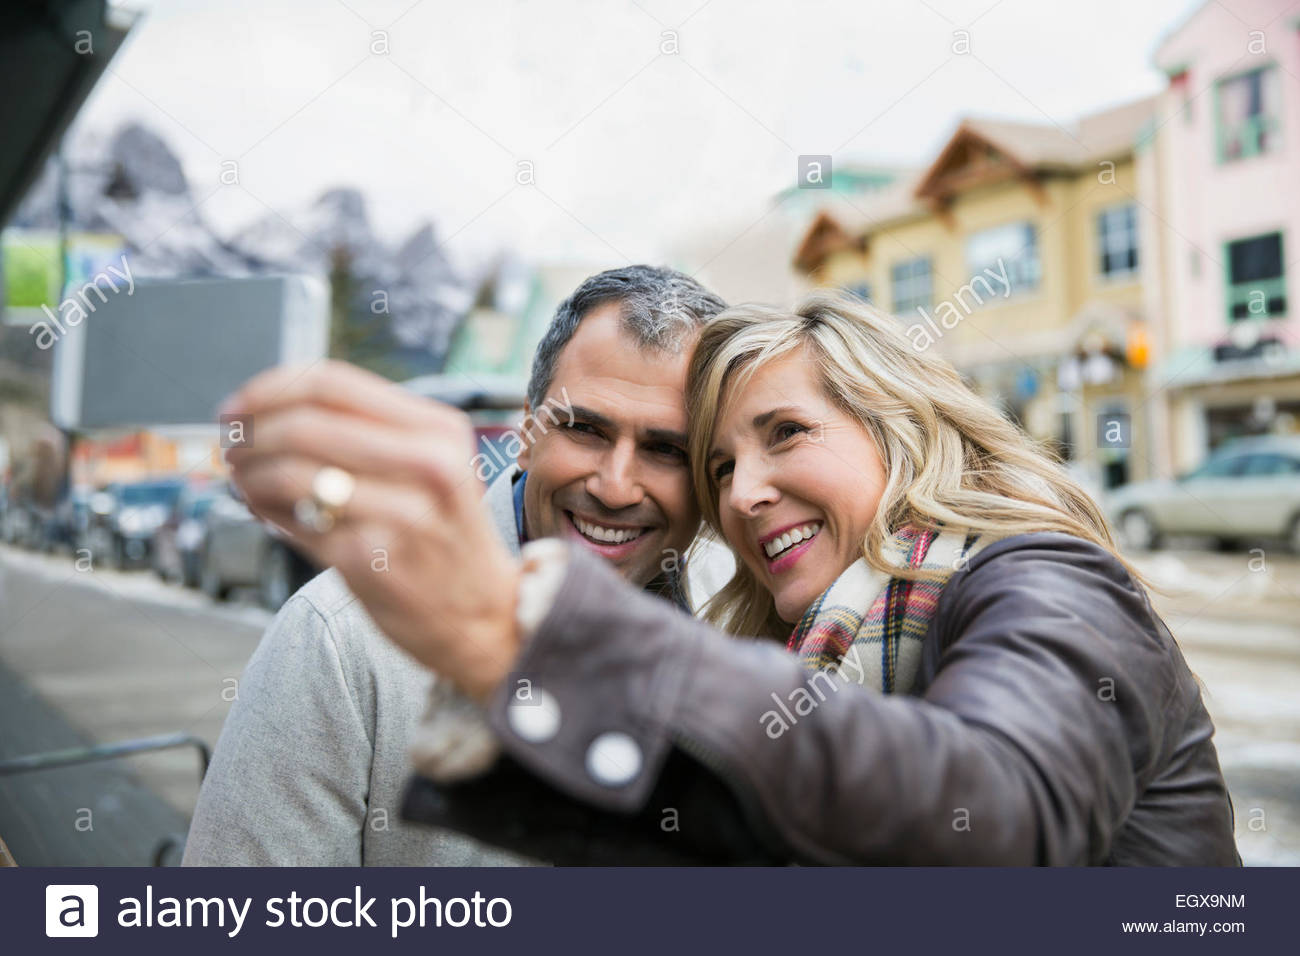 Smiling couple taking selfie outdoors - Stock Image